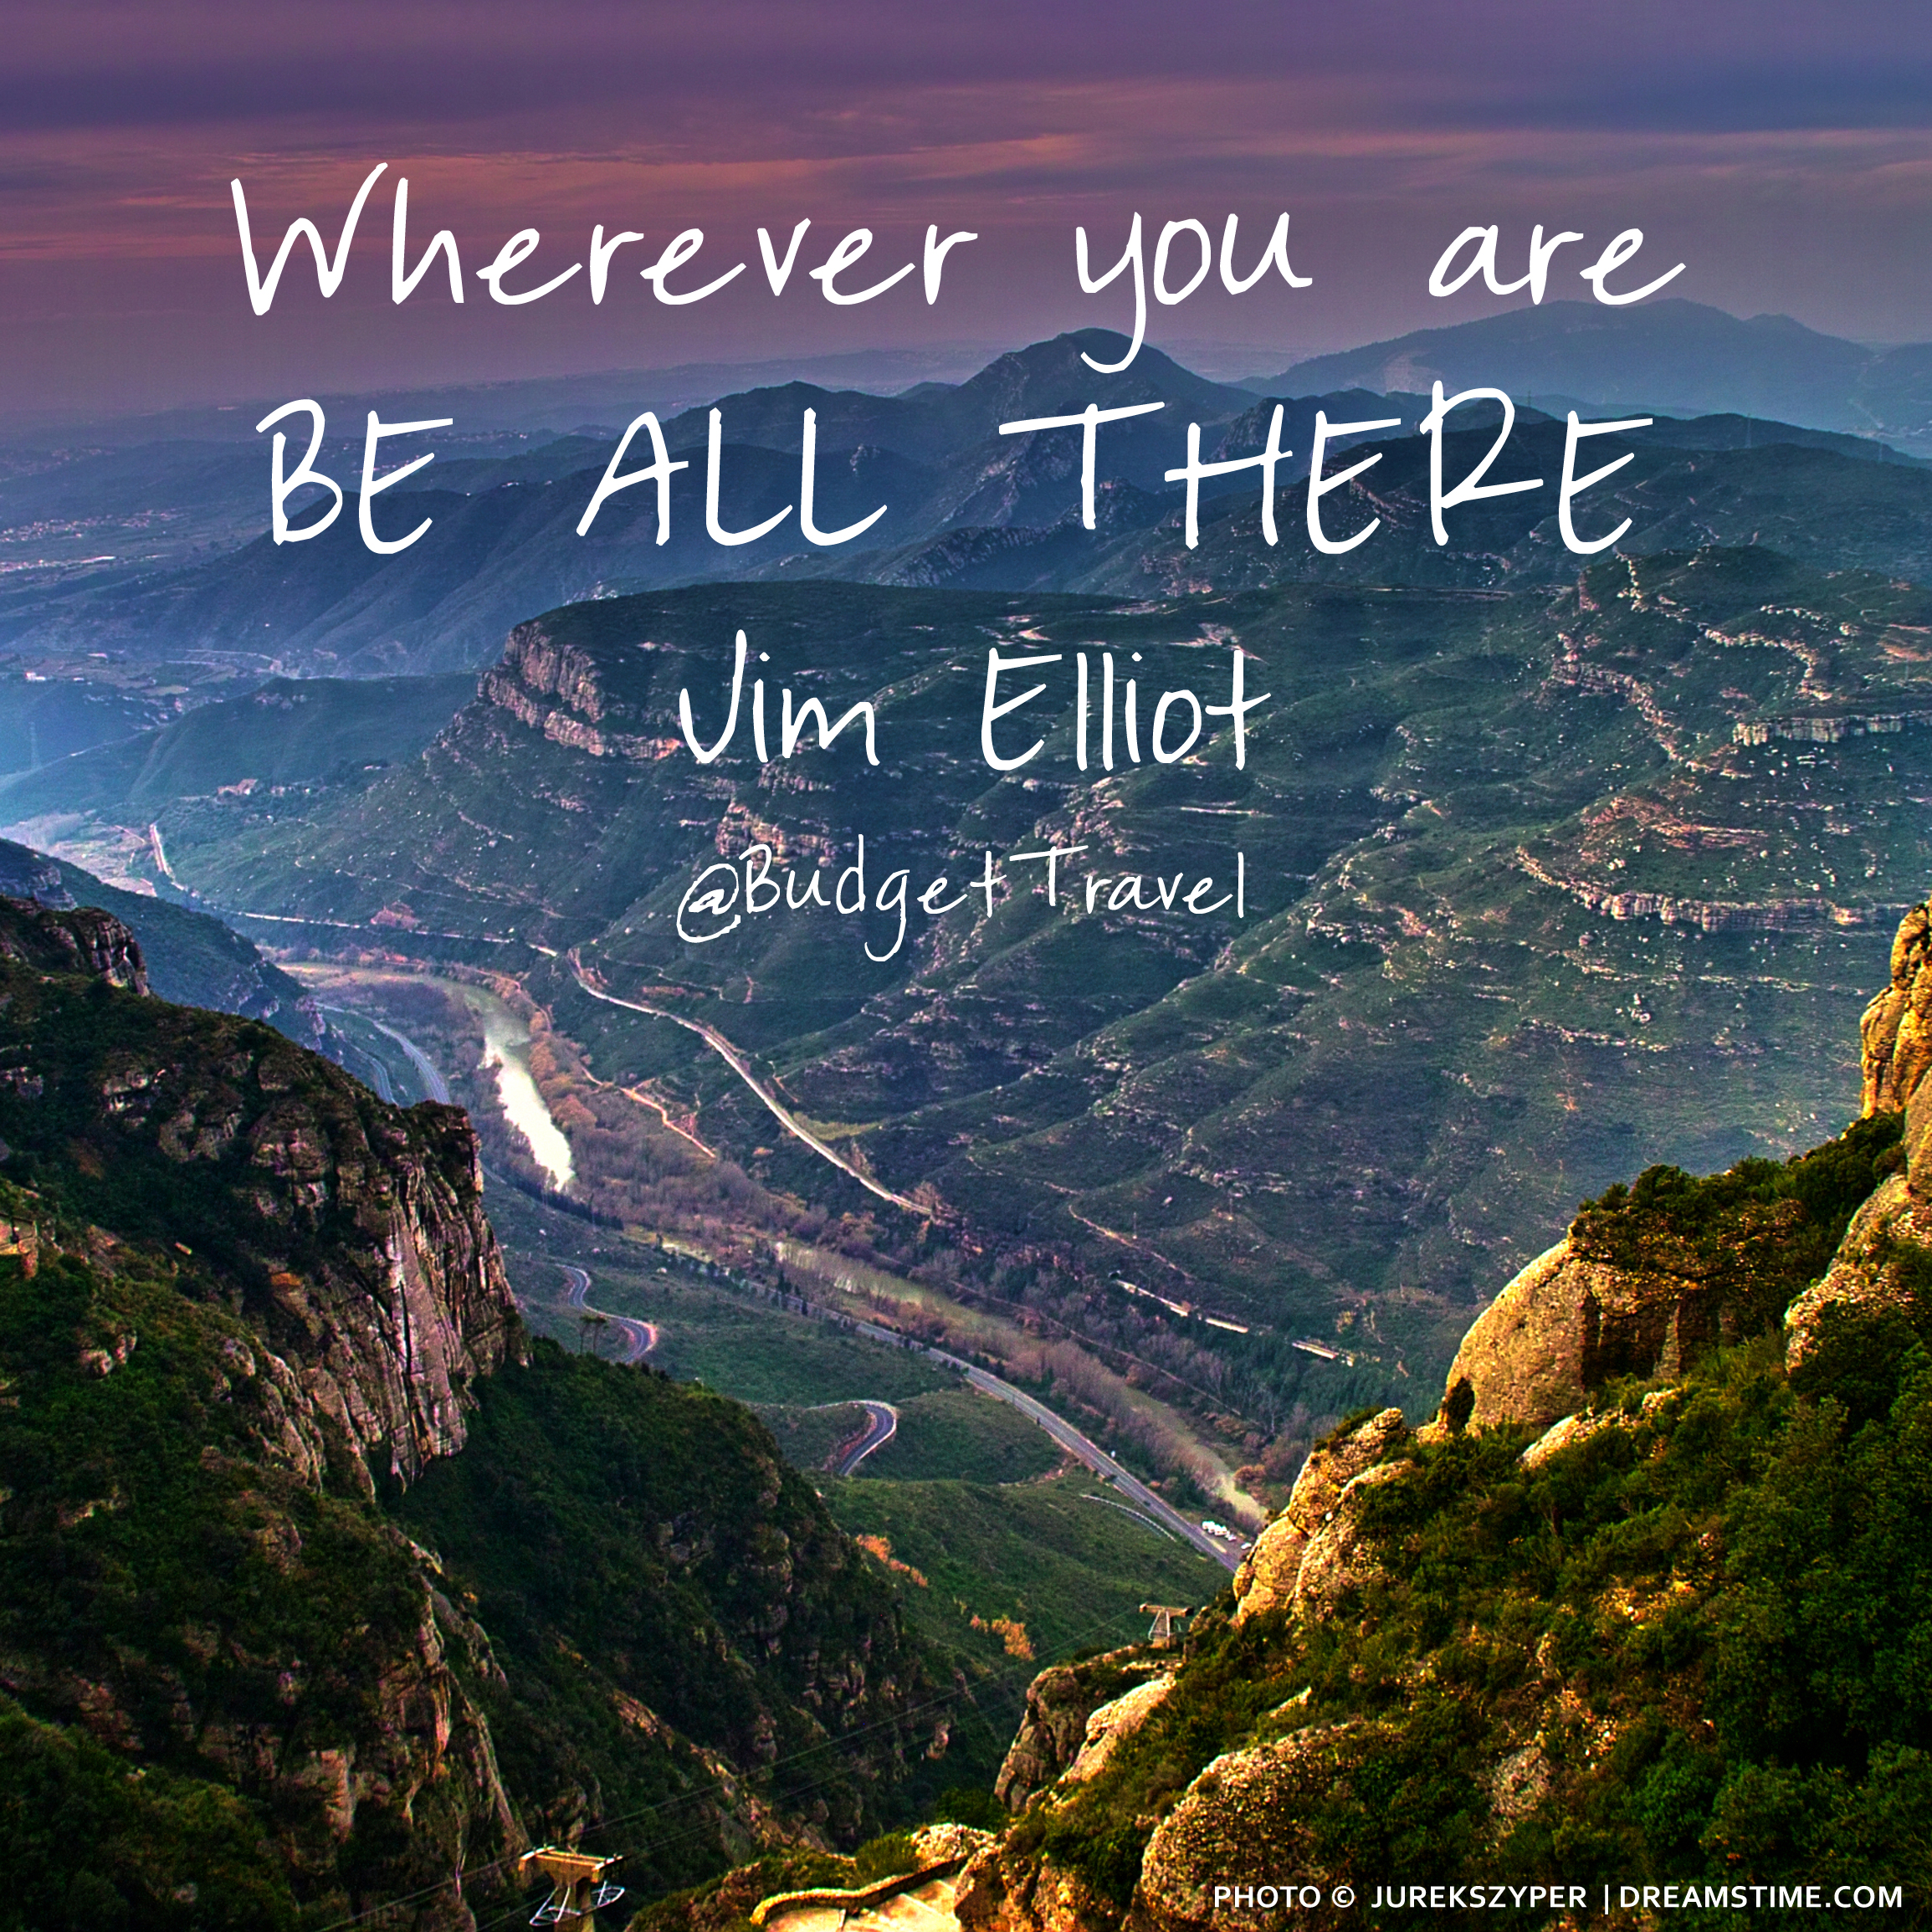 wherever-you-go-be-all-there-travel-quote-472015-192854_original